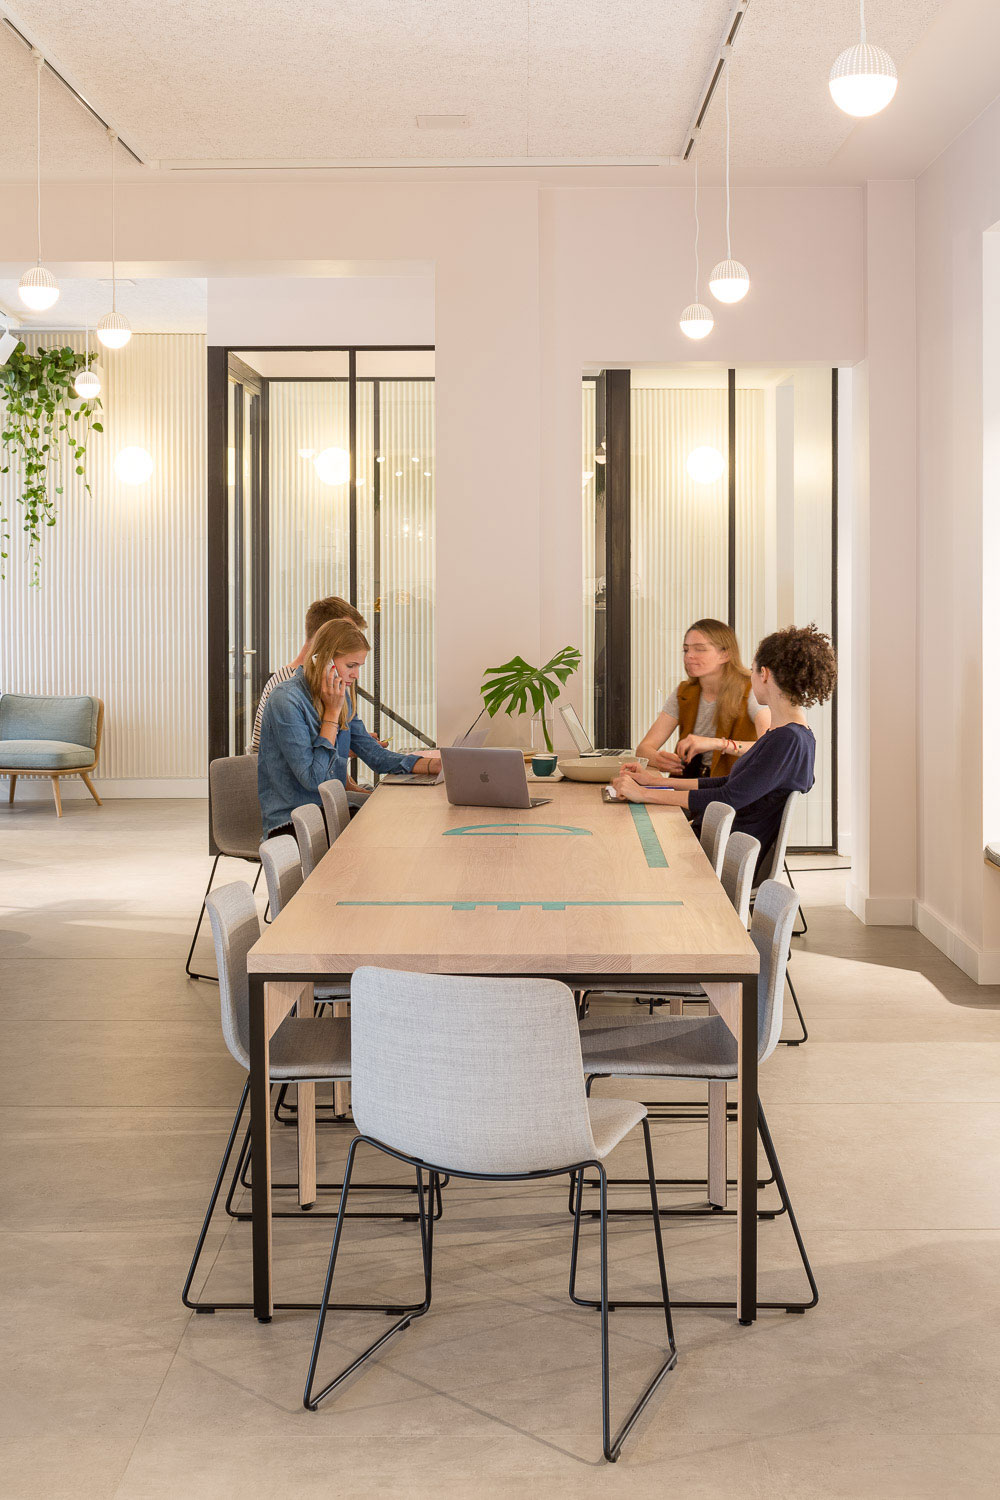 Architecture-London-Design-Freehaus-Hermanns-Berlin-Coworking-Cafe-Communal-Table-1.jpg